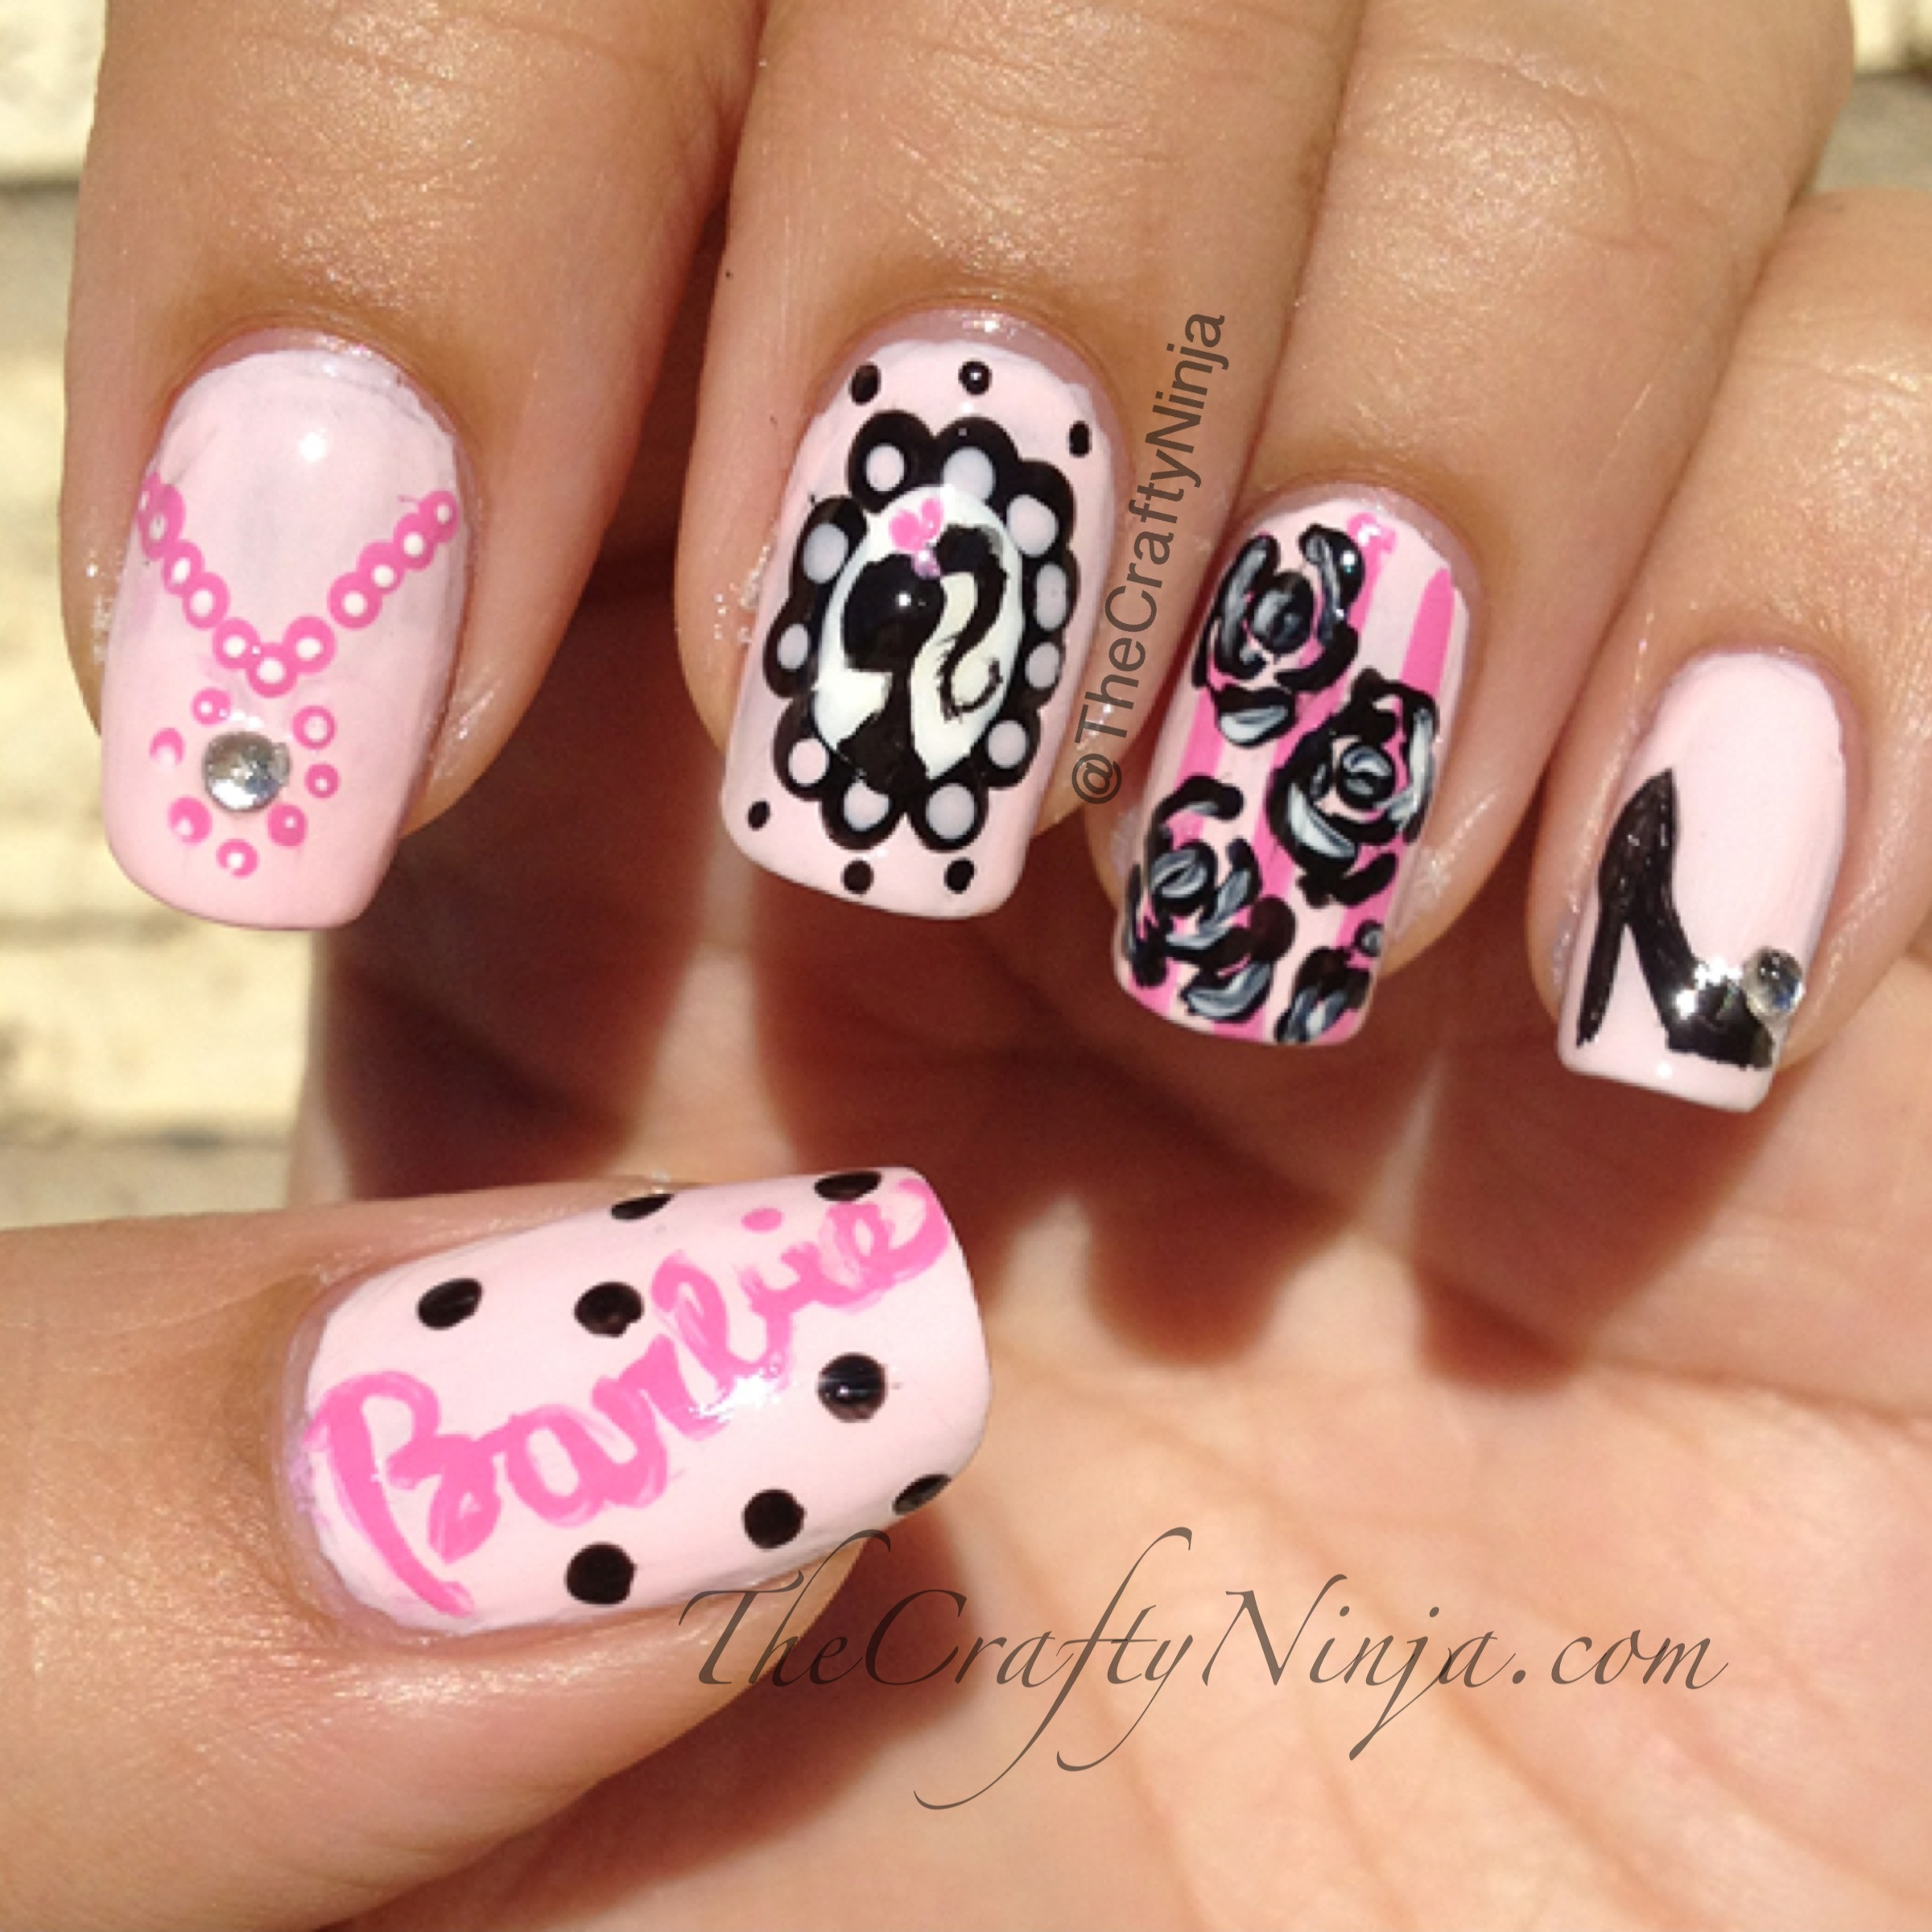 Cameo Barbie Nails | The Crafty Ninja